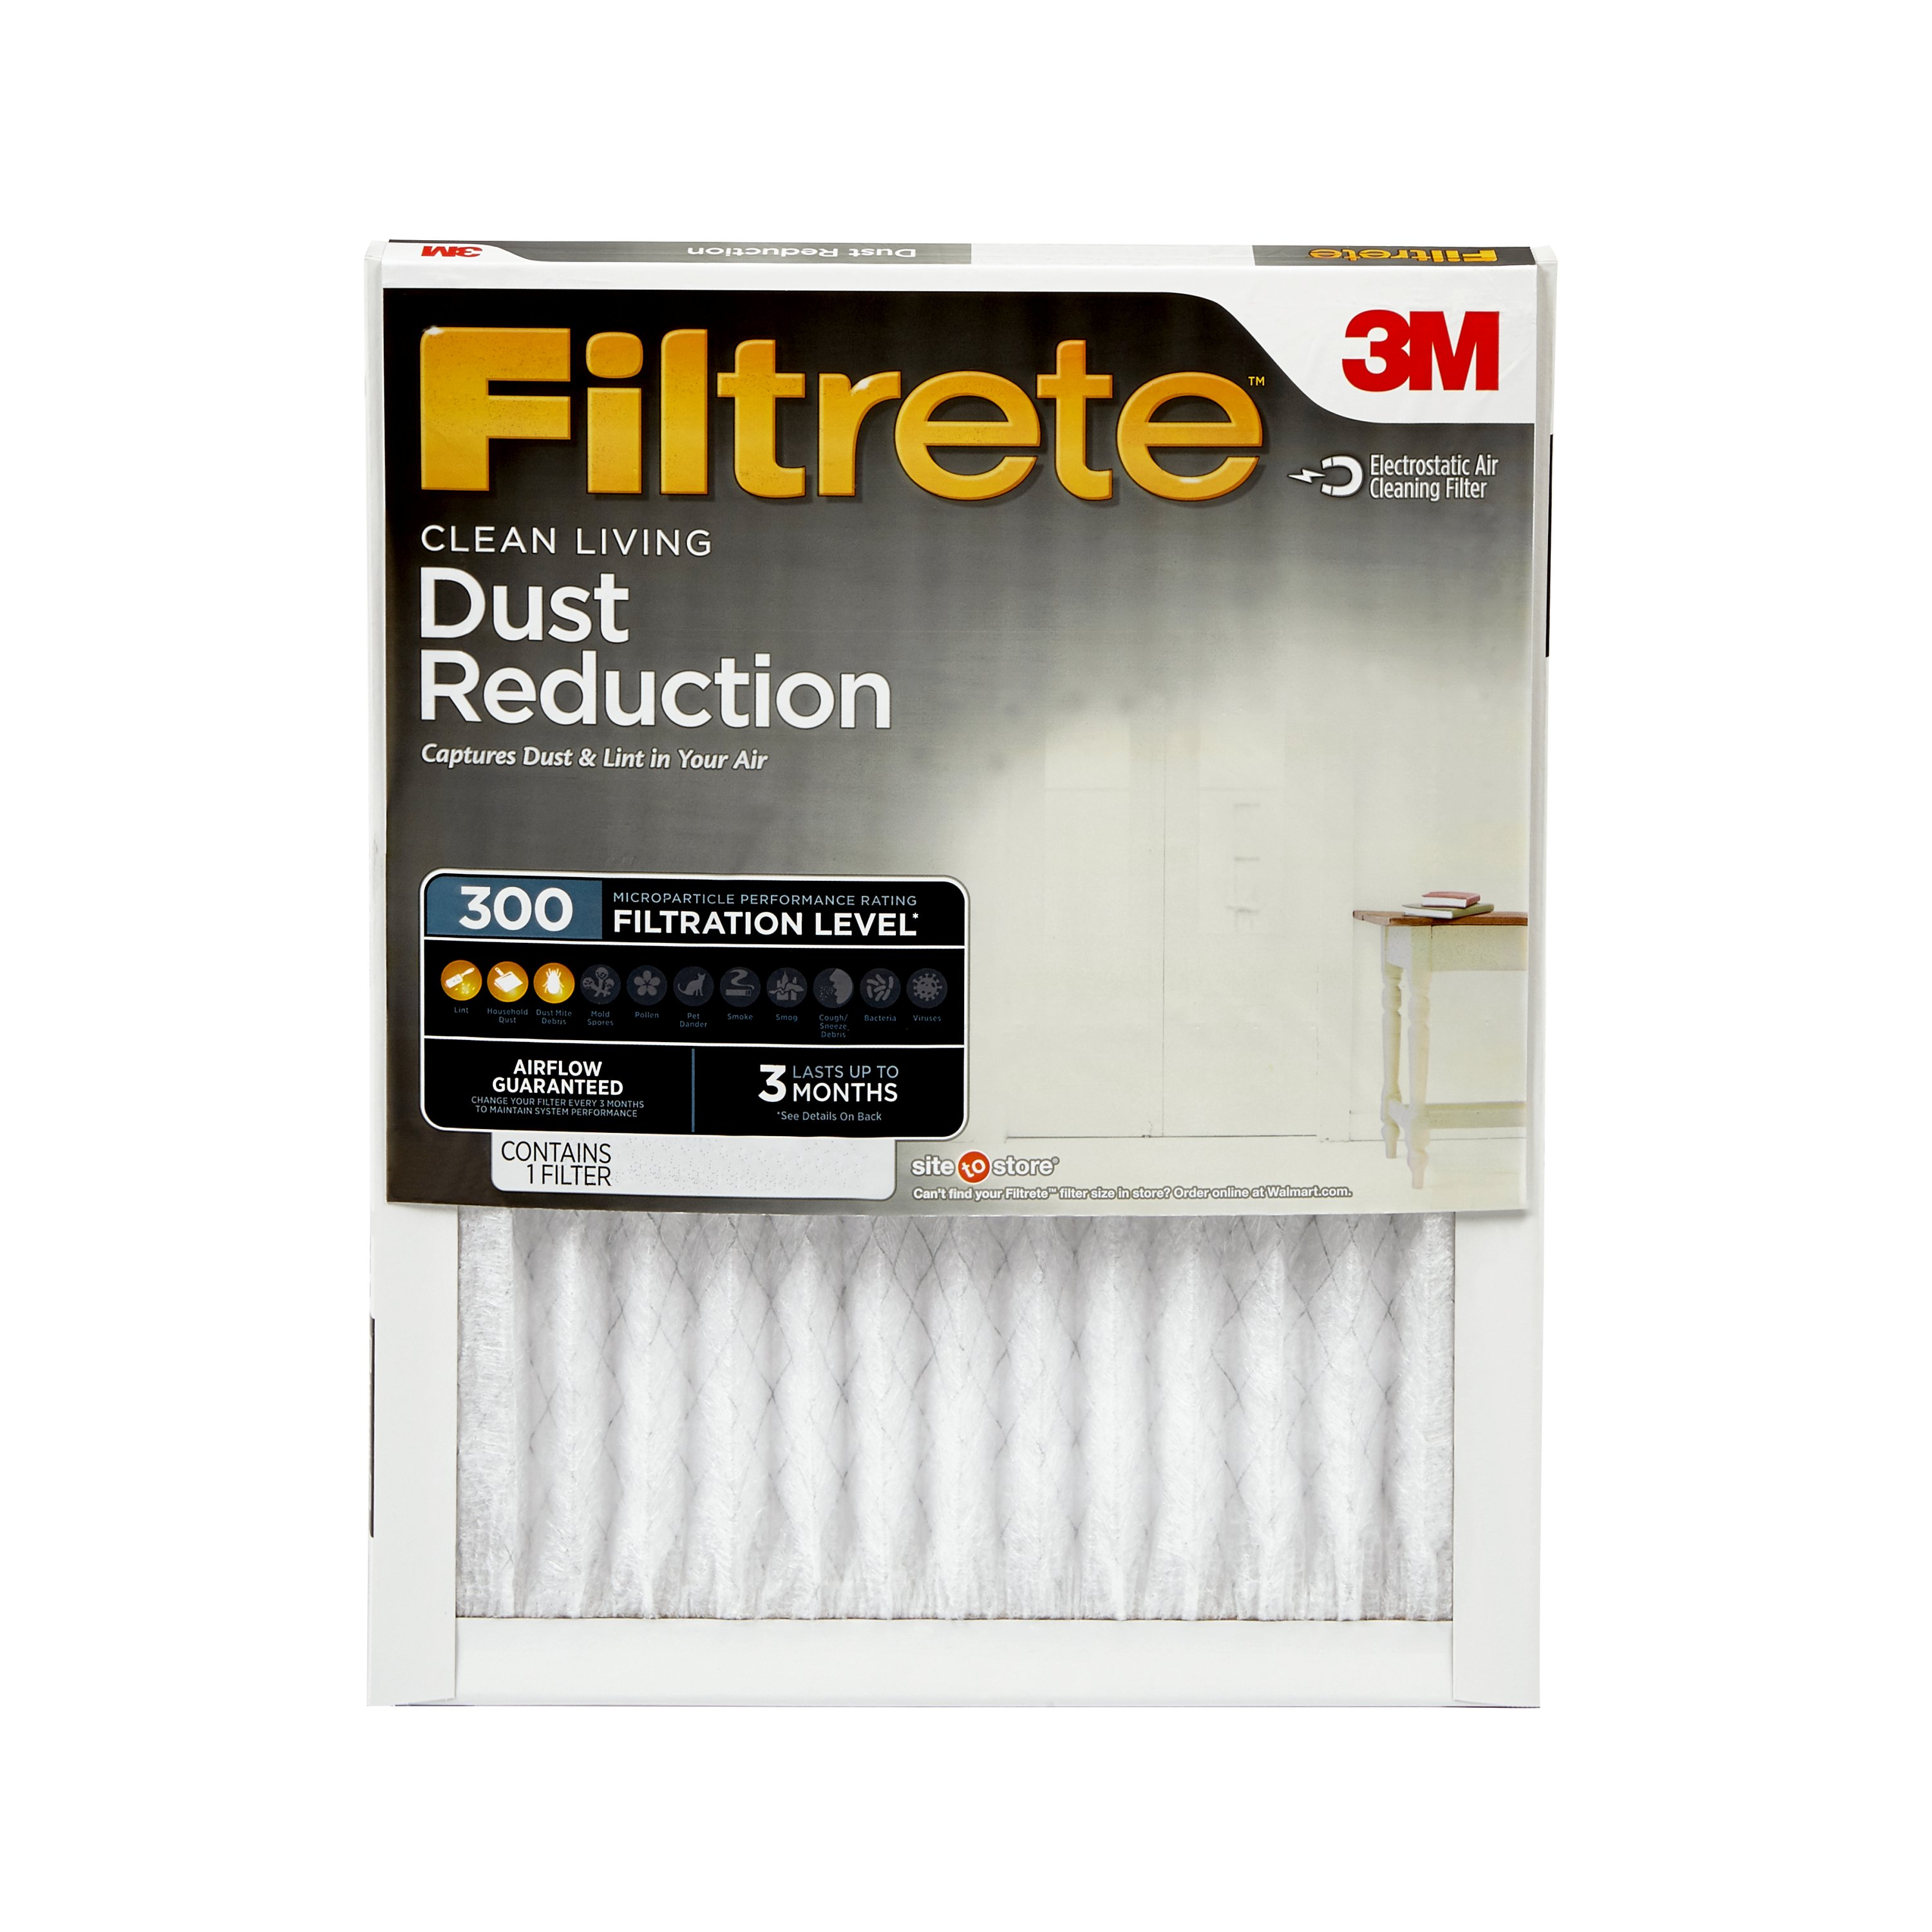 Filtrete 20x30x1, Clean Living Dust Reduction HVAC Furnace Air Filter, 300 MPR, 1 Filter